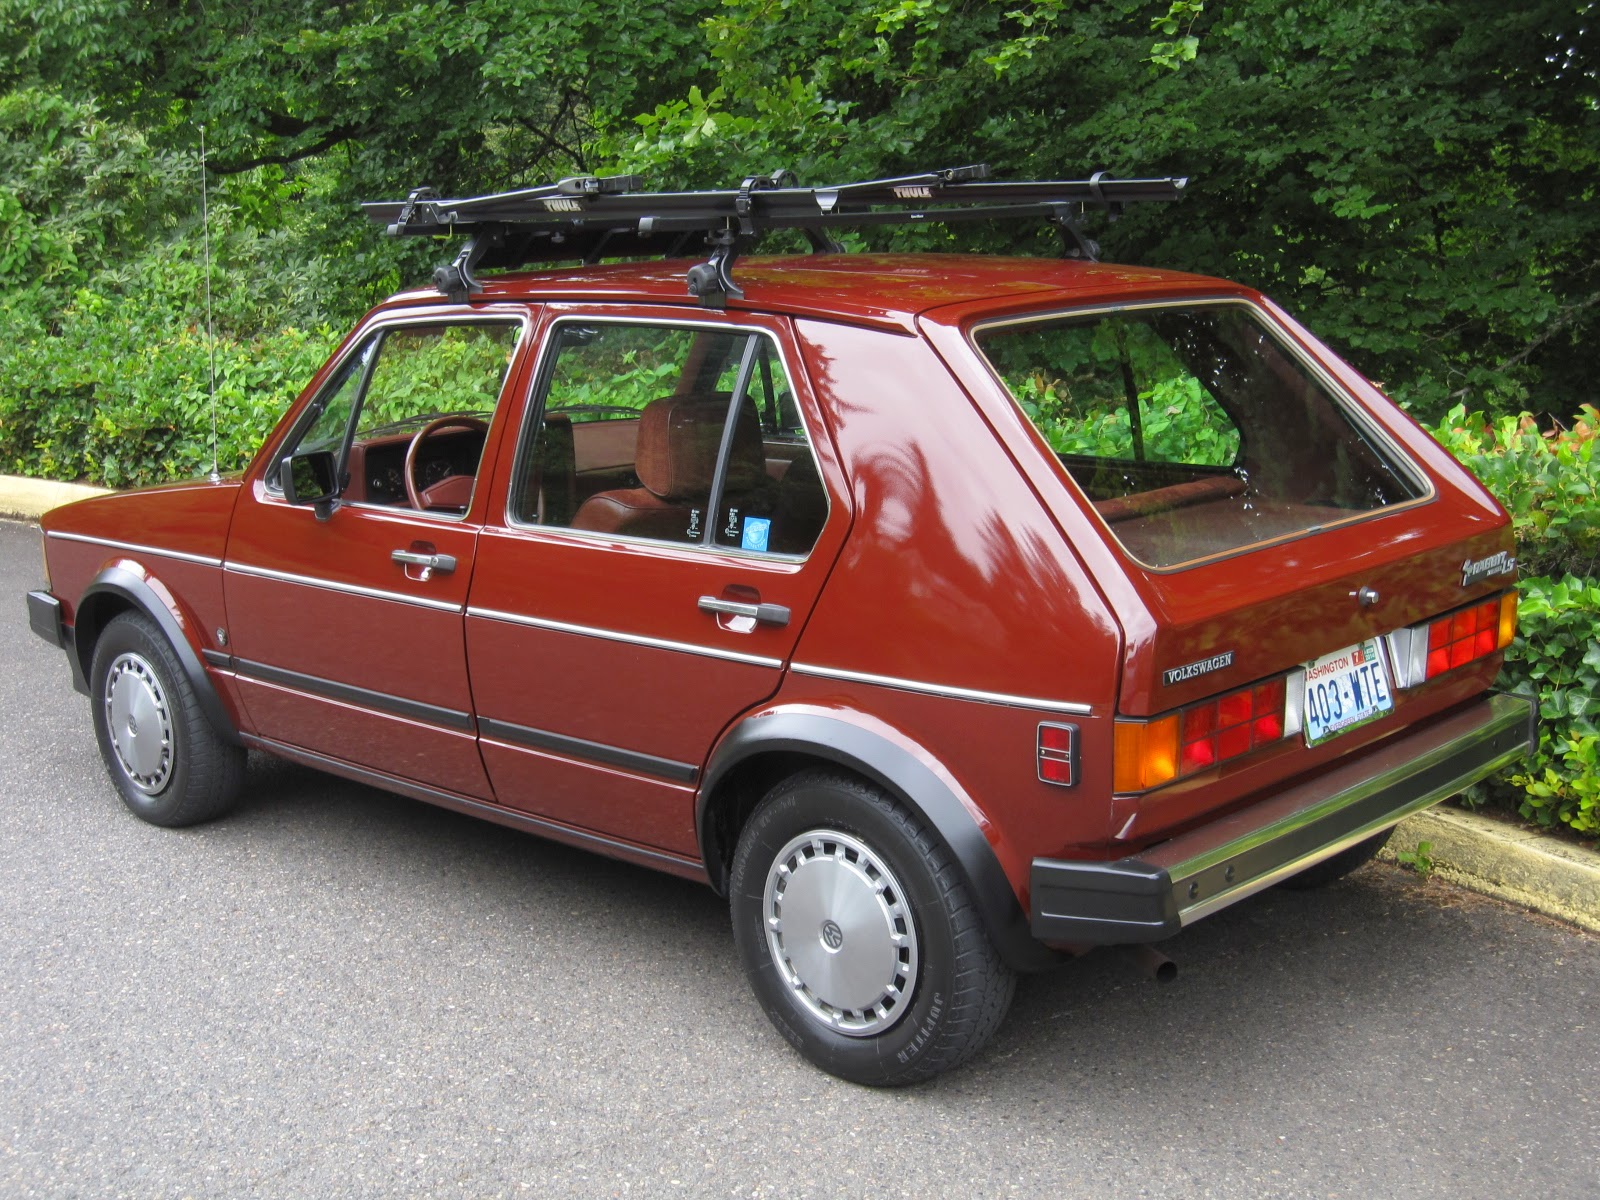 1983 volkswagen rabbit diesel buy classic volks. Black Bedroom Furniture Sets. Home Design Ideas